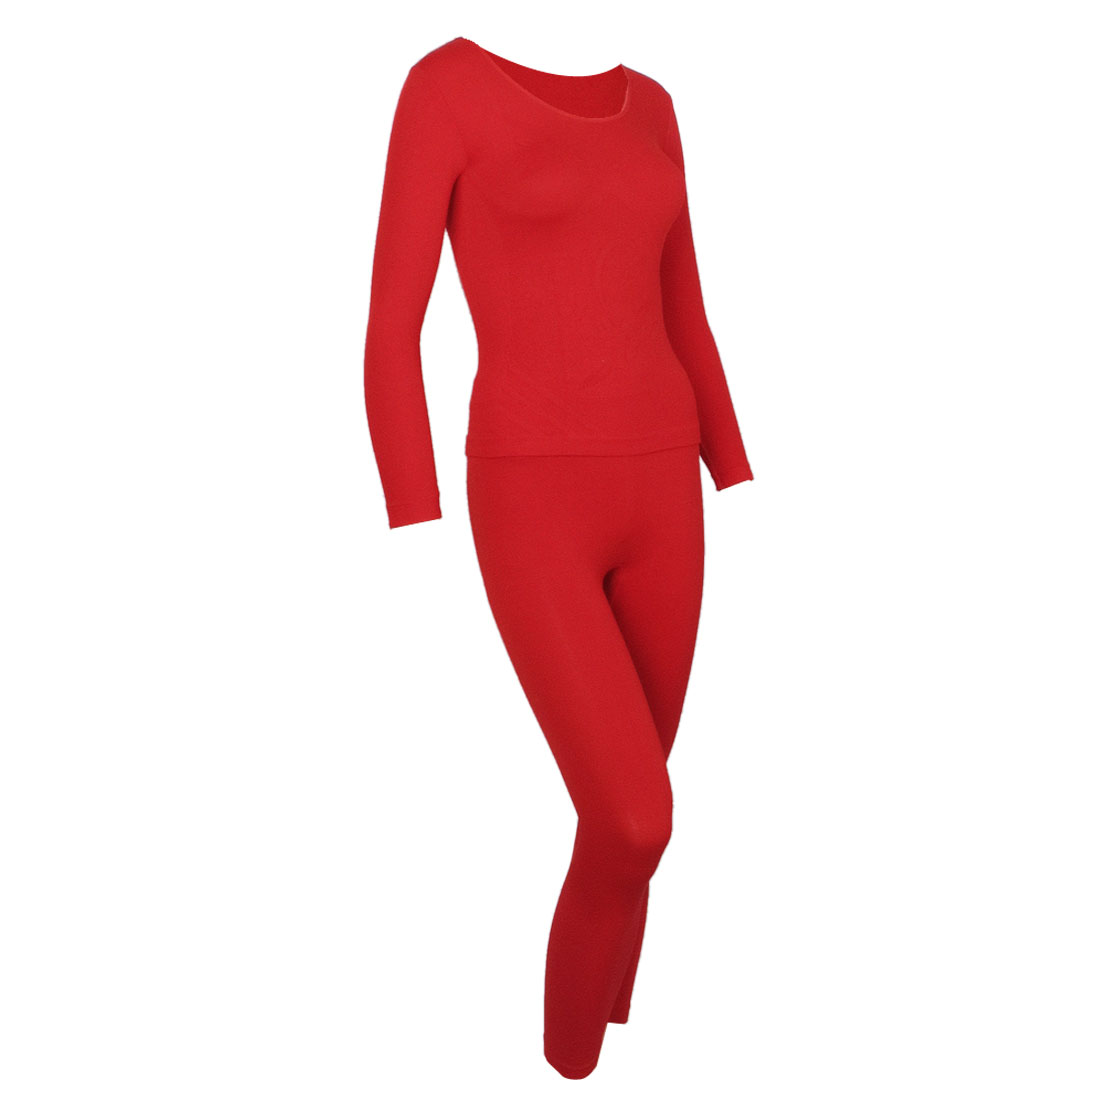 Red Scoop Neck Closefitting Elastic Thermal Underwear Suits for Women XS